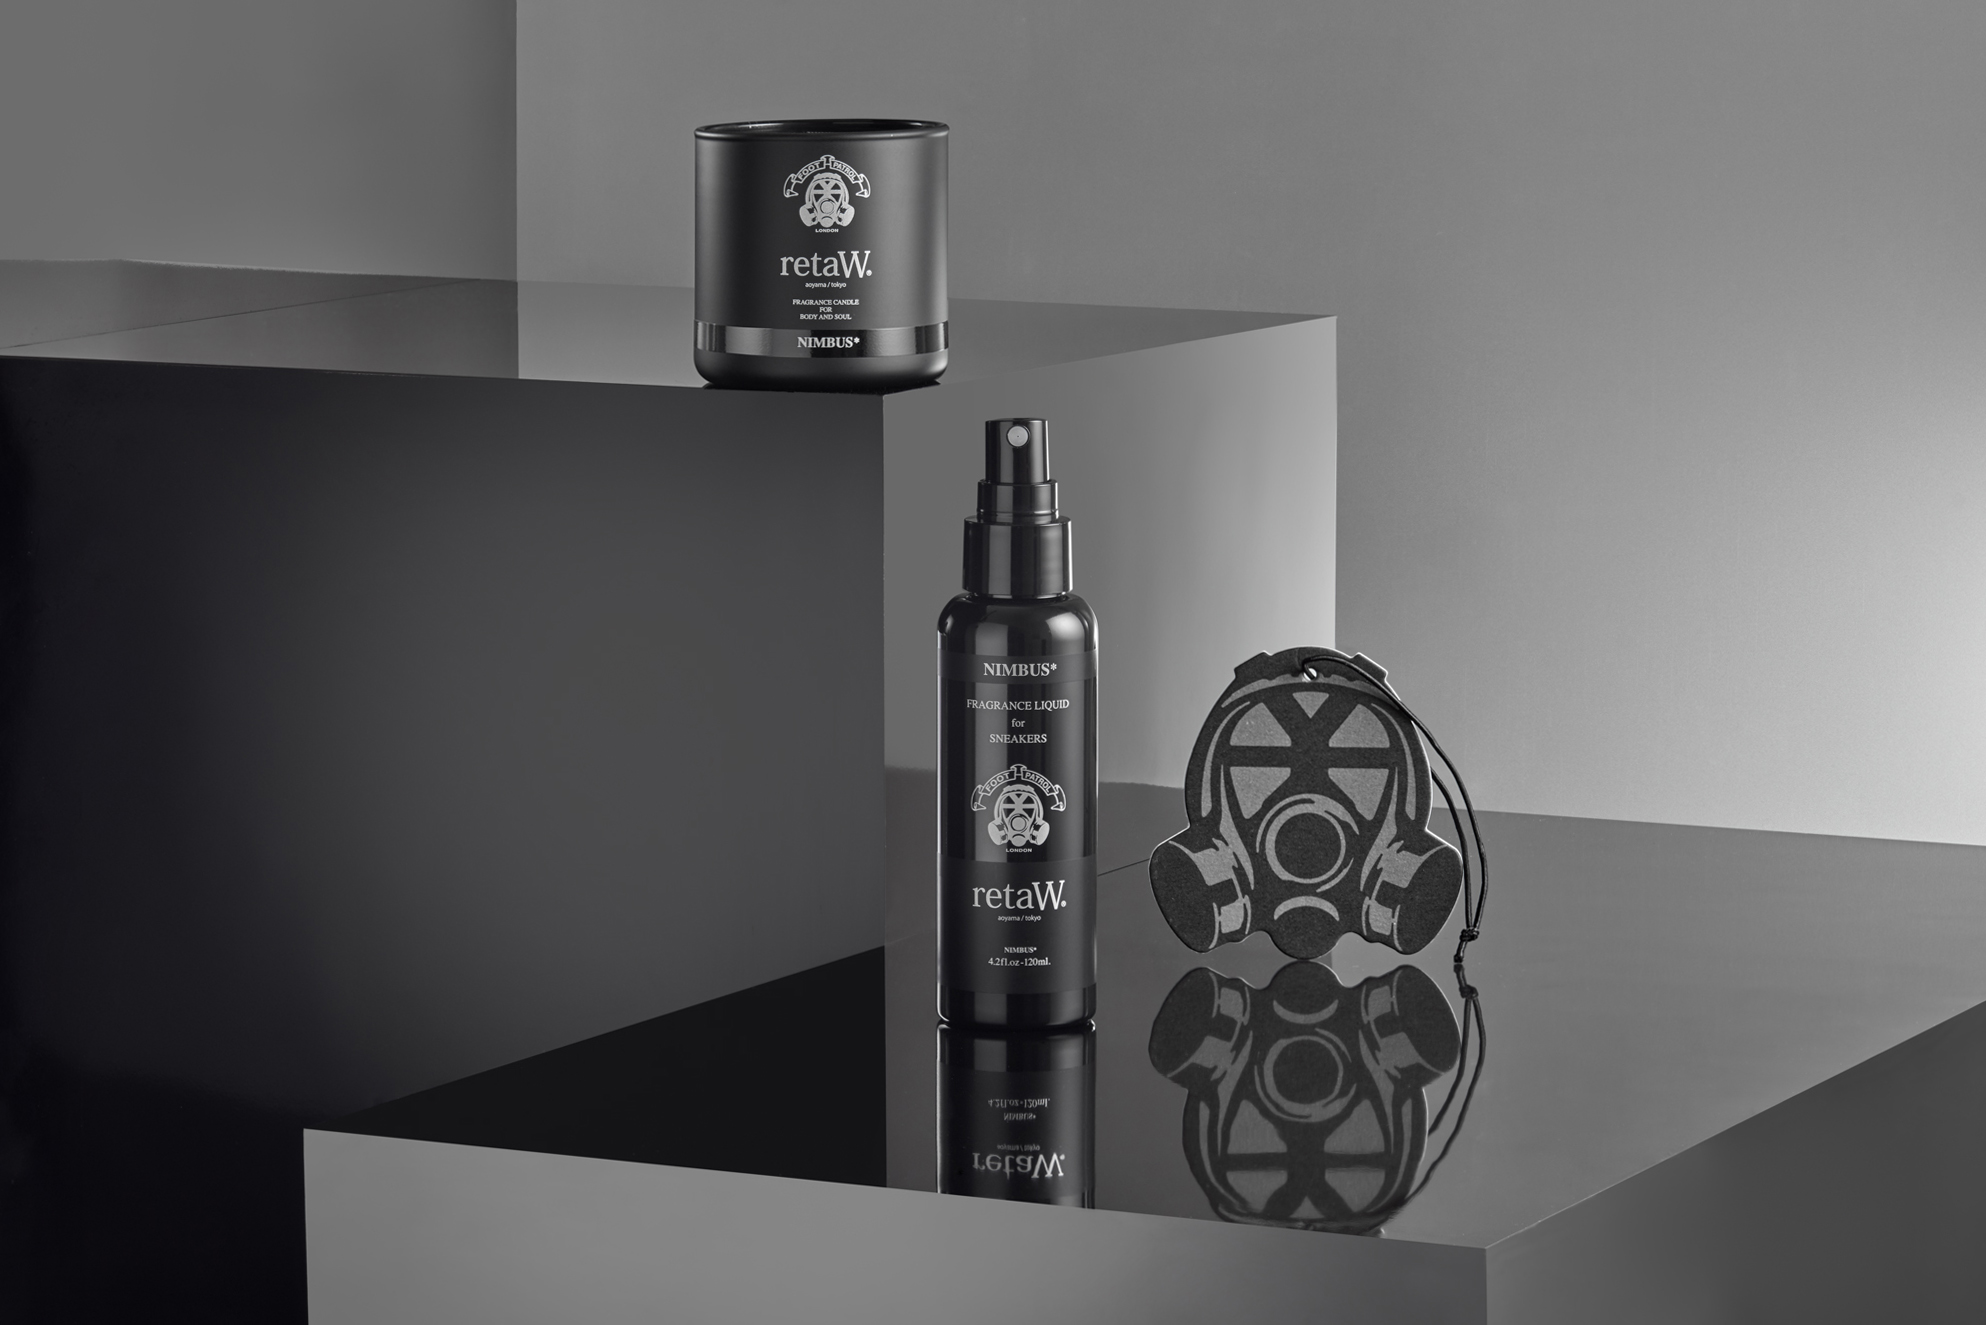 still life cosmetics shot on gloss luxury surface, product photography at its best form London product photographer based in croydon chris howlett photography